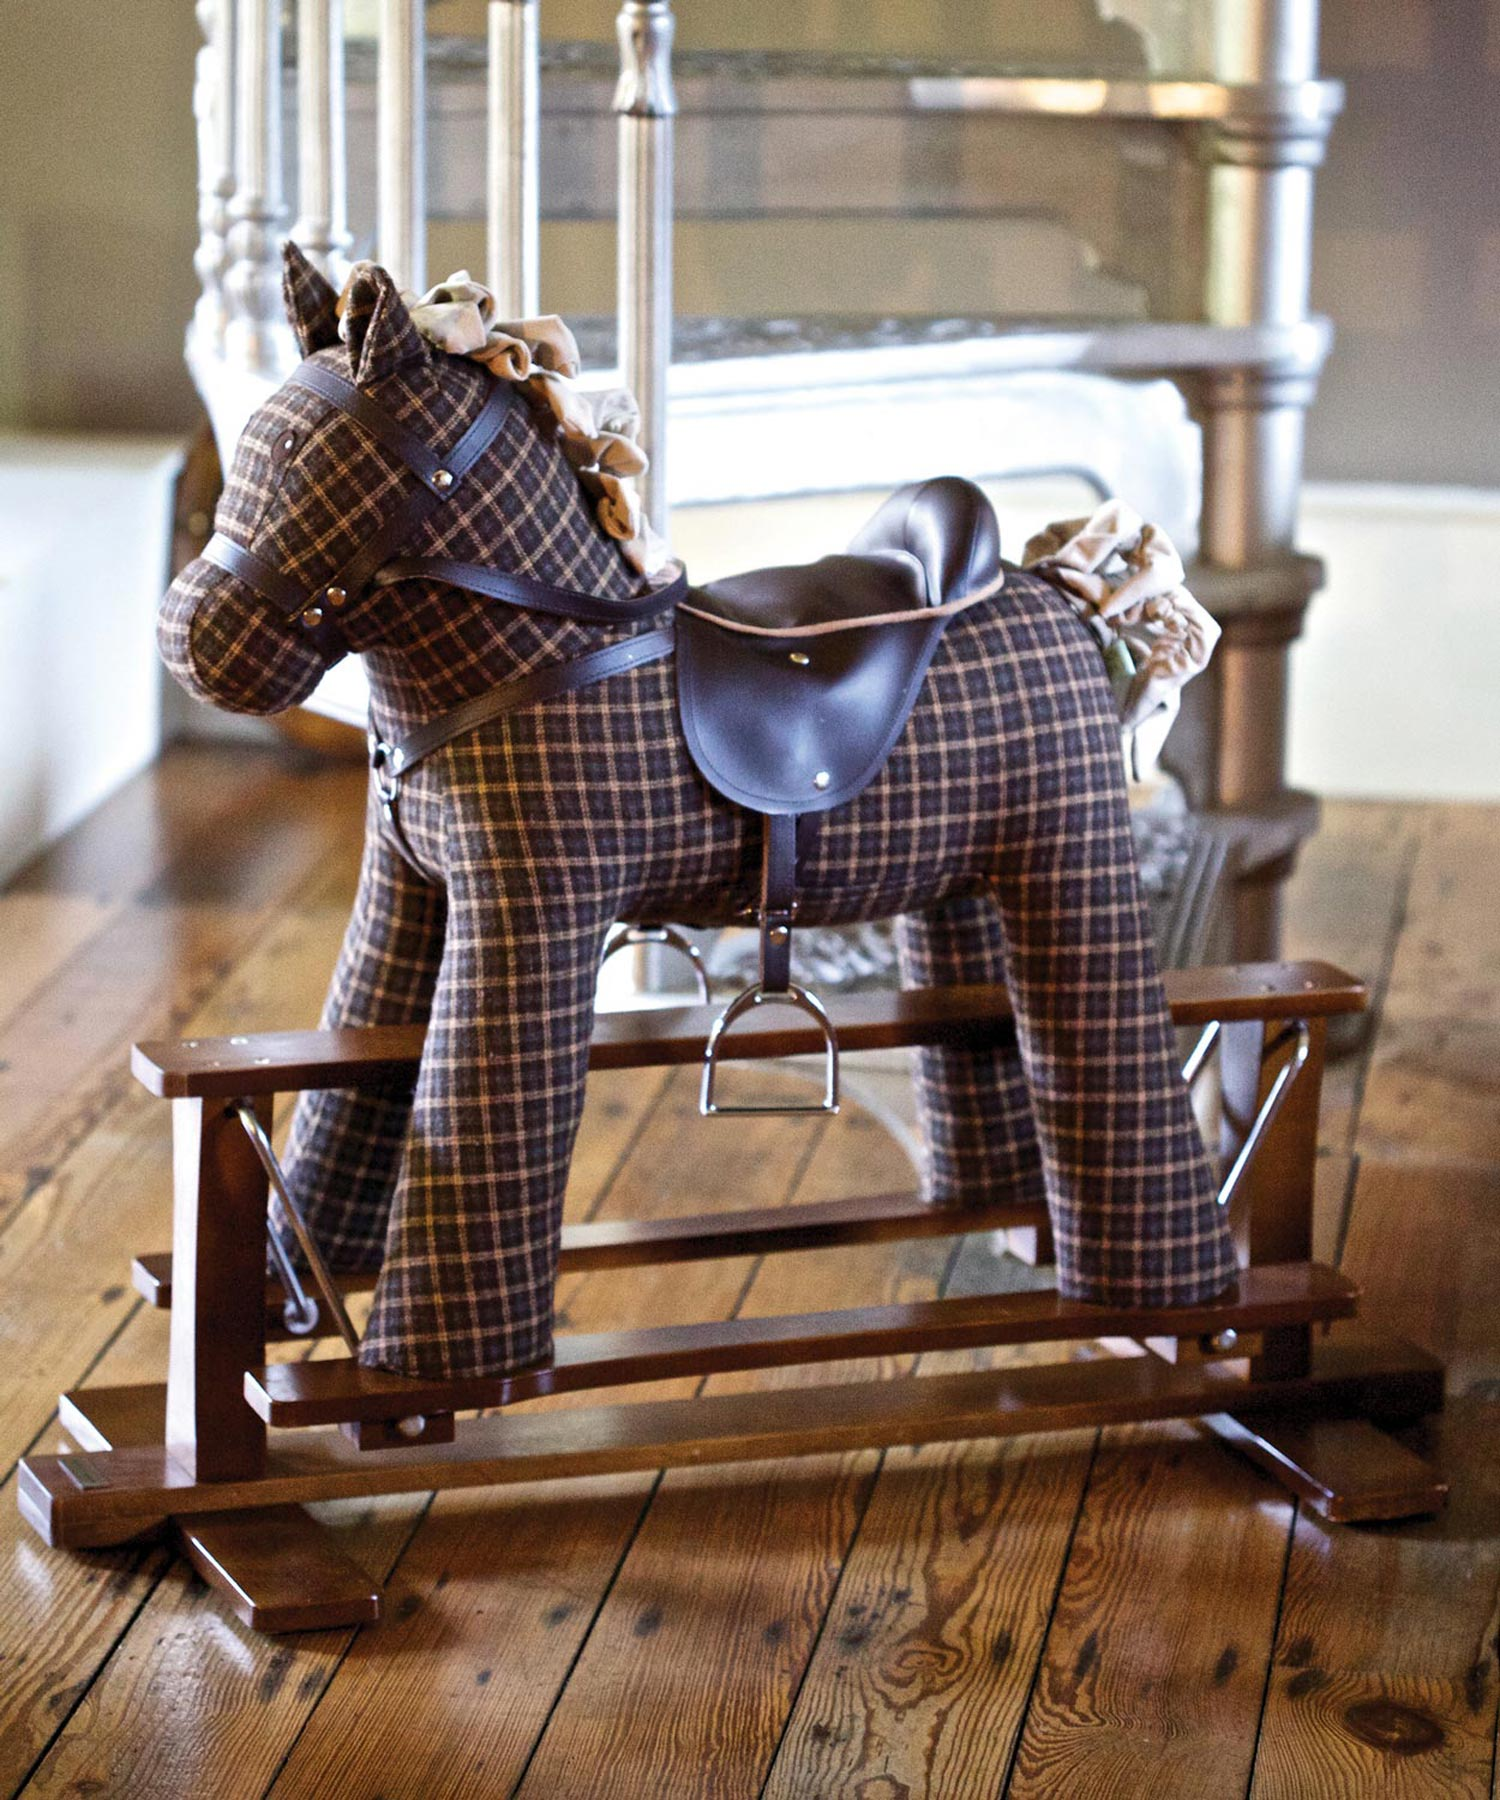 Tennyson Rocking Horse